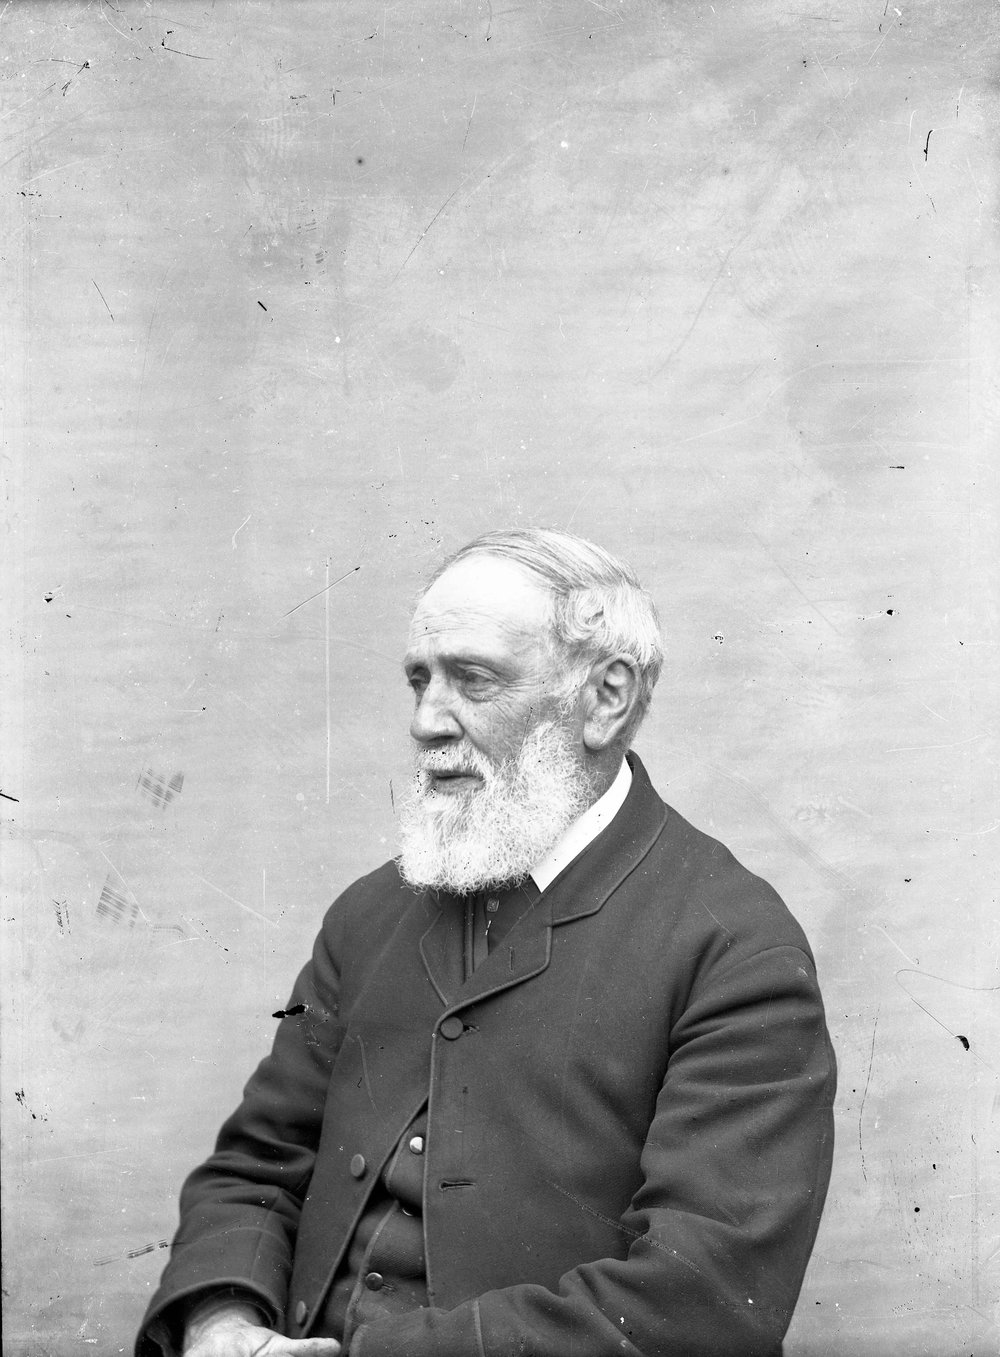 Photograph from the John Boulden Collection at the South West Image Bank